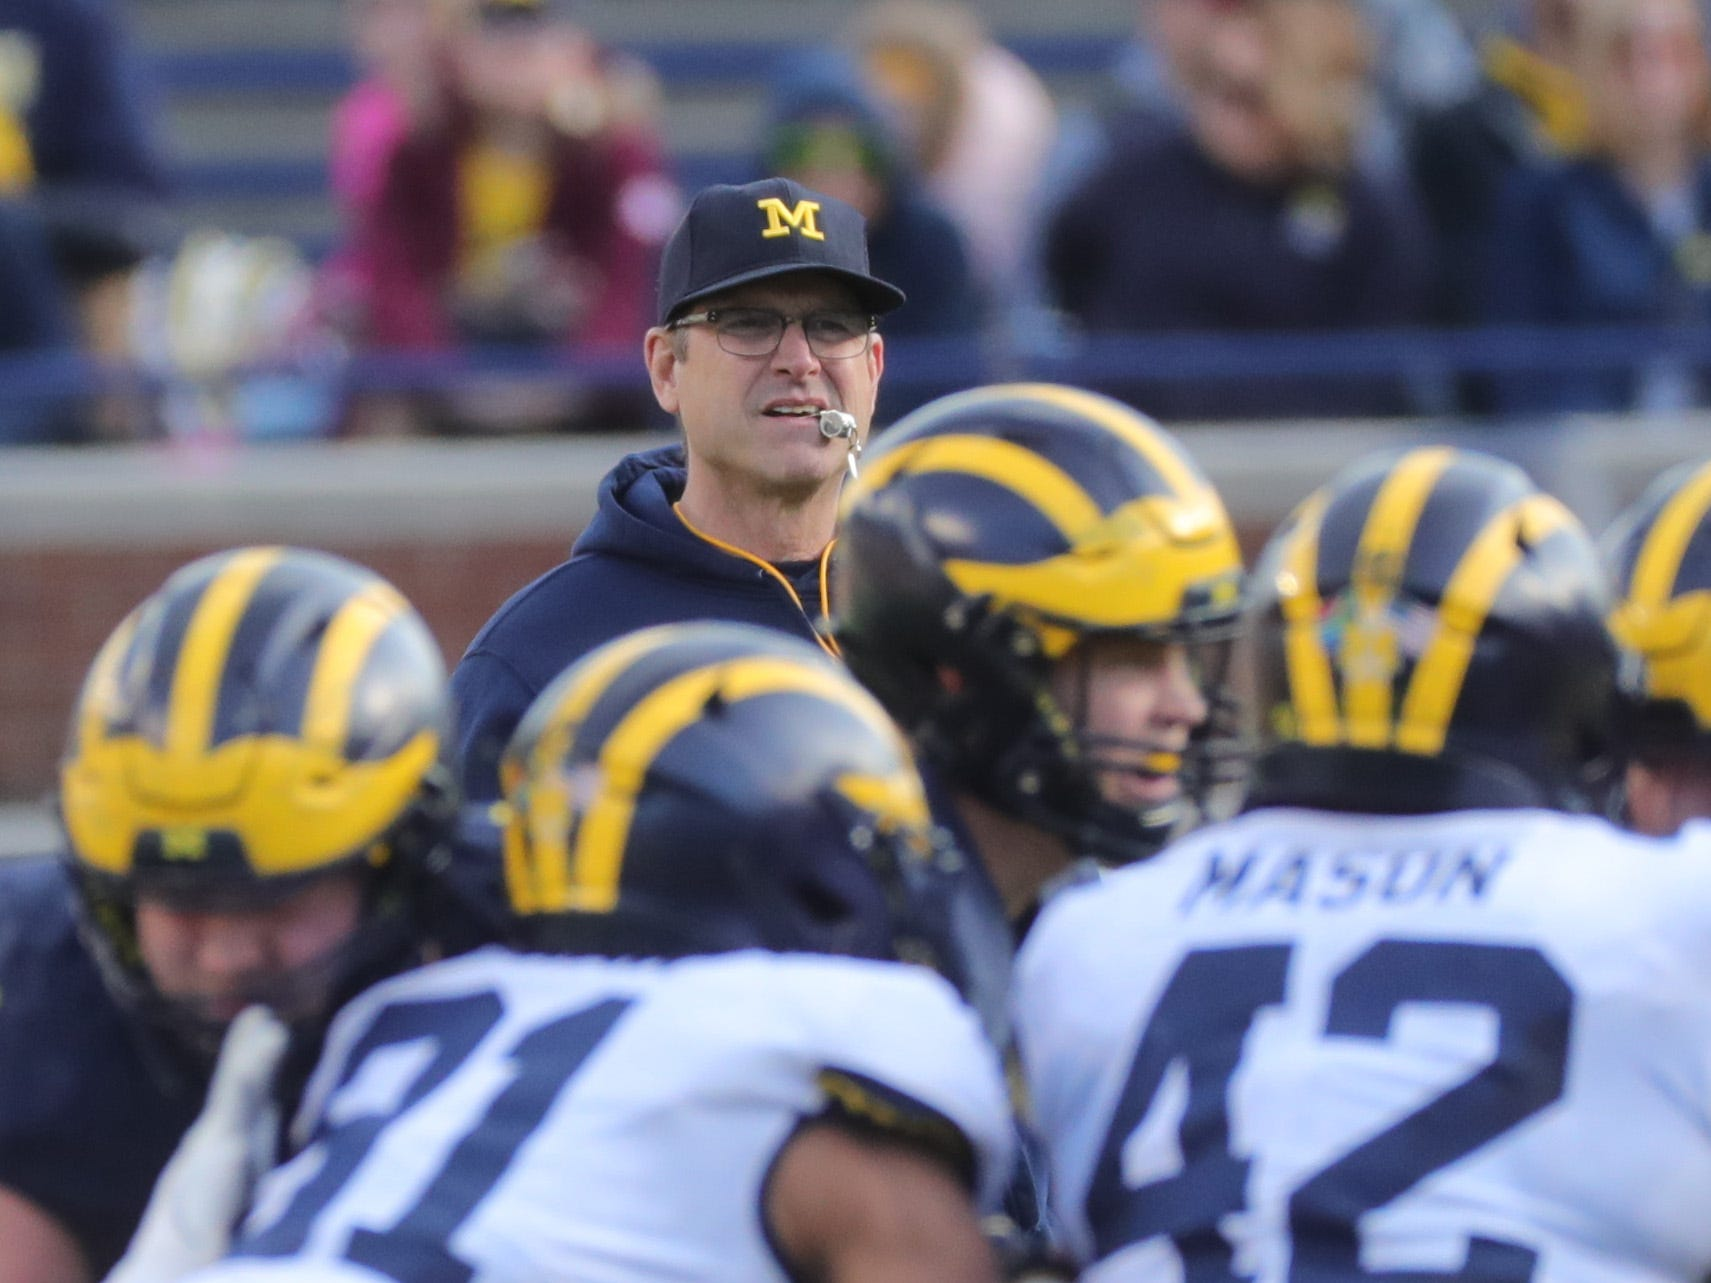 Michigan head coach Jim Harbaugh watches the action during the spring game Saturday, April 13, 2019 at Michigan Stadium in Ann Arbor.